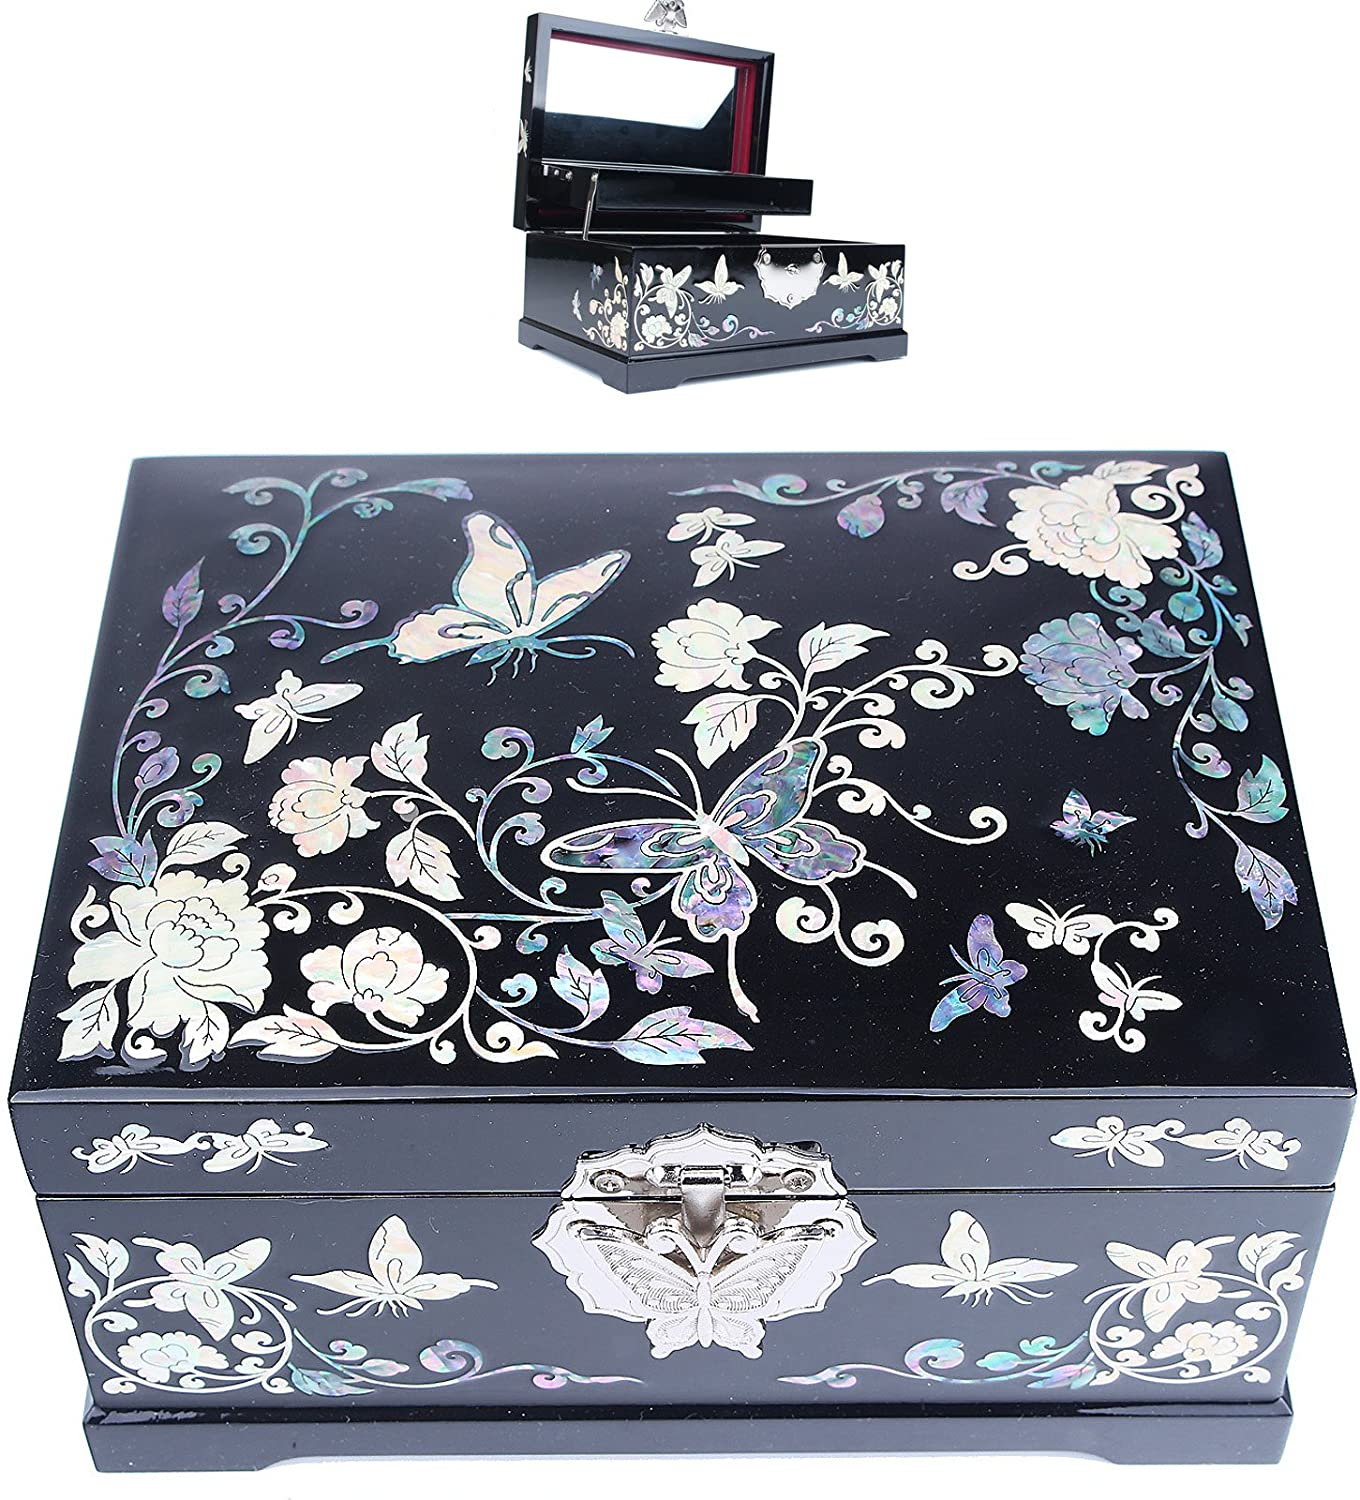 Hail Jewelry Boxes Jewelry Organizer Gift Item Mother of Pearl Butterfly HJL1002Black